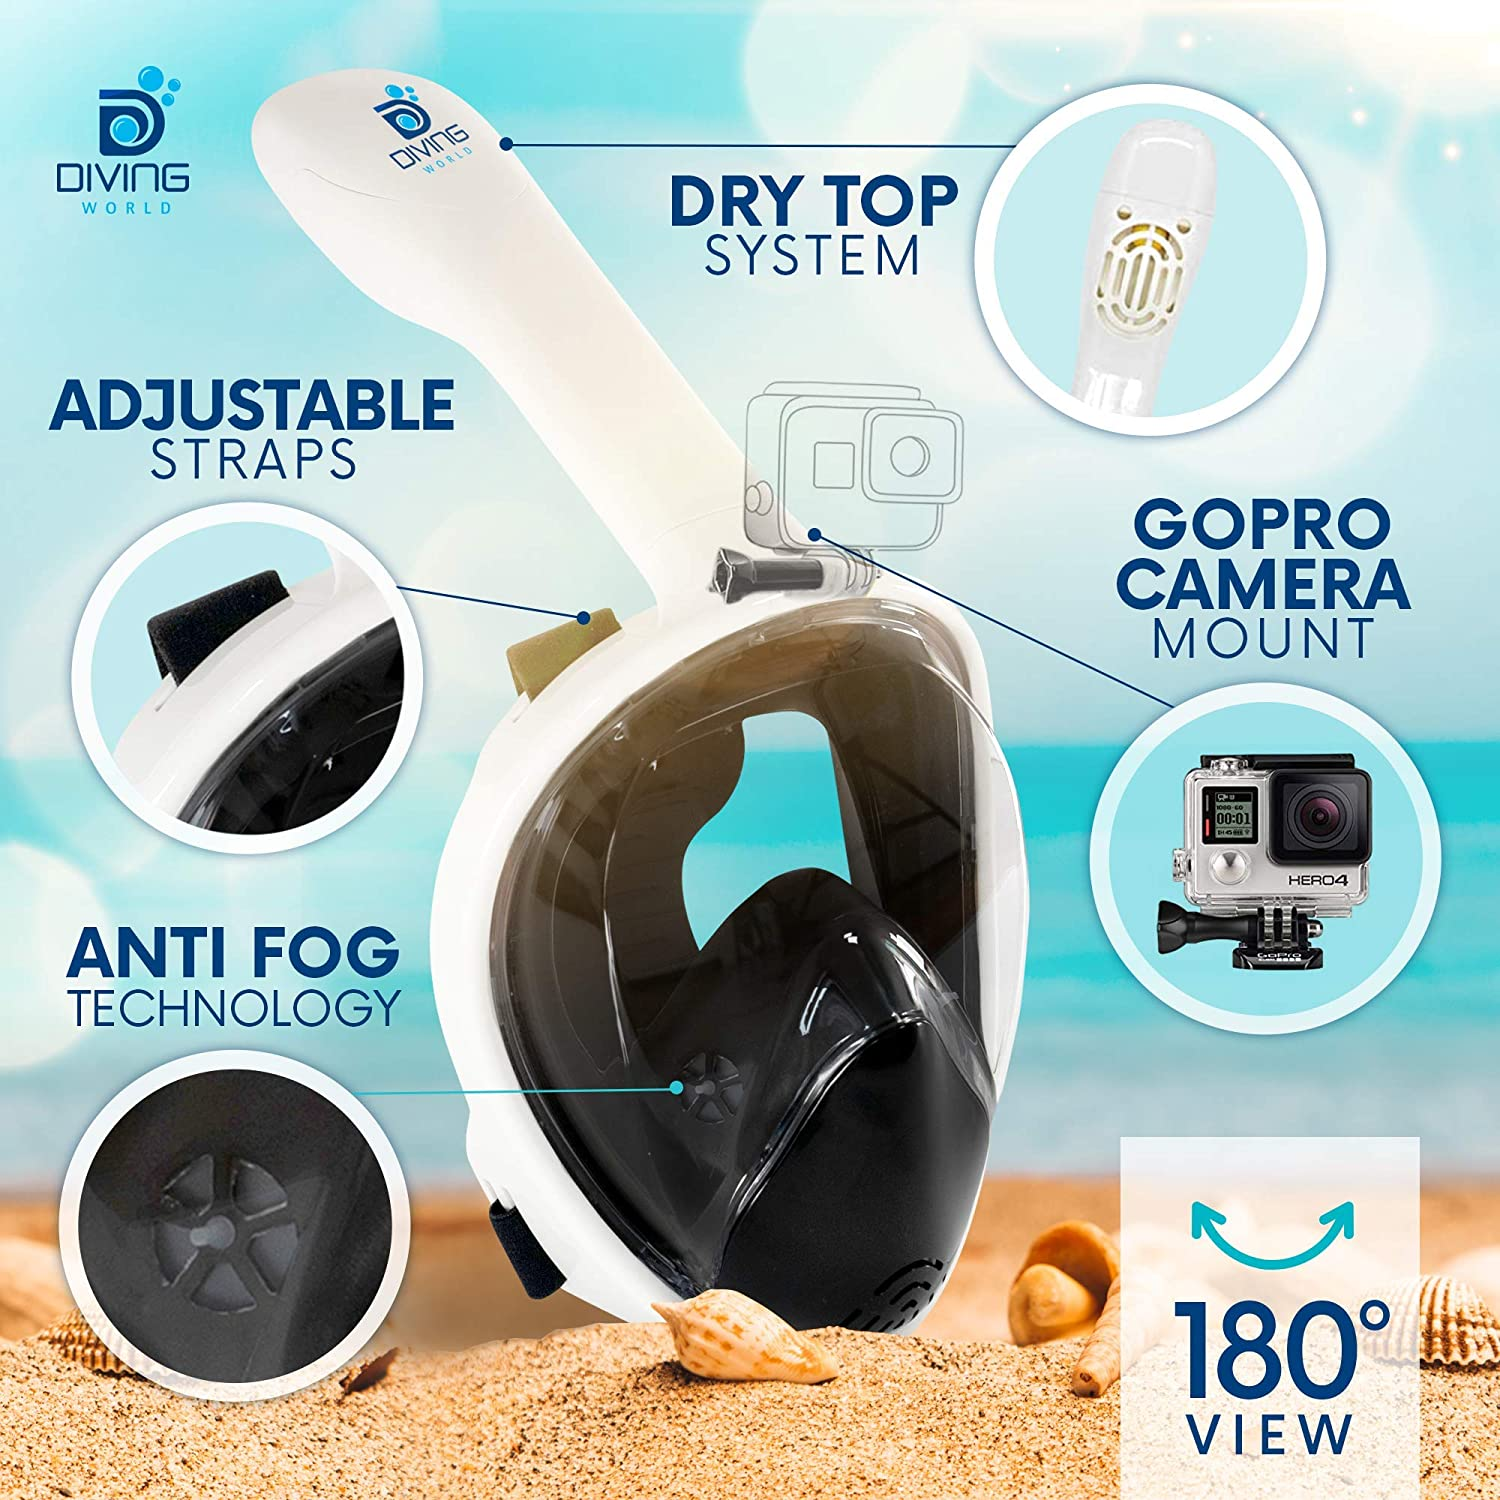 Improved Masks Snorkeling Mask for Adults /& Kids Anti Fog Tech Dive /& Snorkel EBook /… Incredible 180/° Underwater Experience Dry Top DIVING WORLD Full Face Snorkel Mask Go Pro Camera Mount